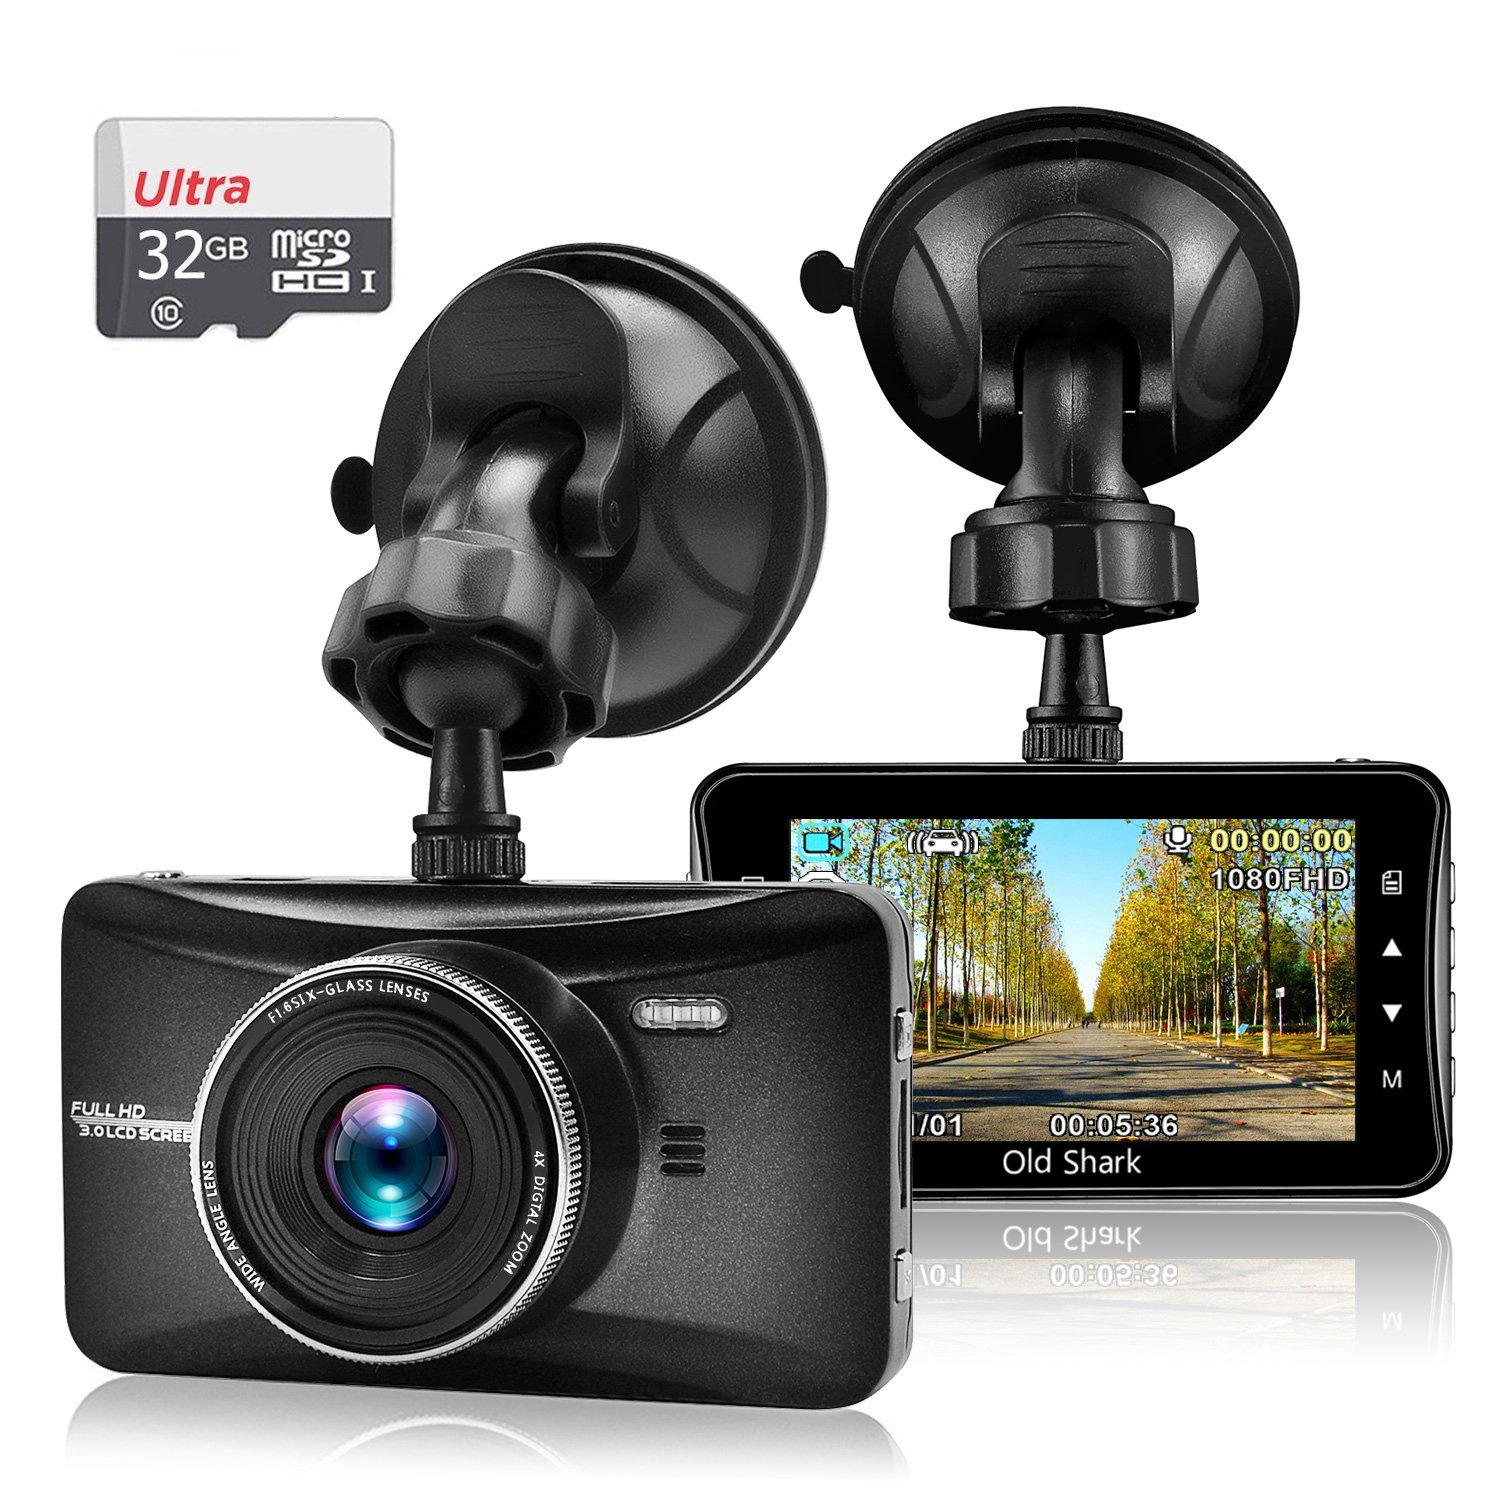 "OldShark 3"" 1080P Dash Cam for Cars with 32GB Card Vehicle Video Recorder Camera Night Vision"